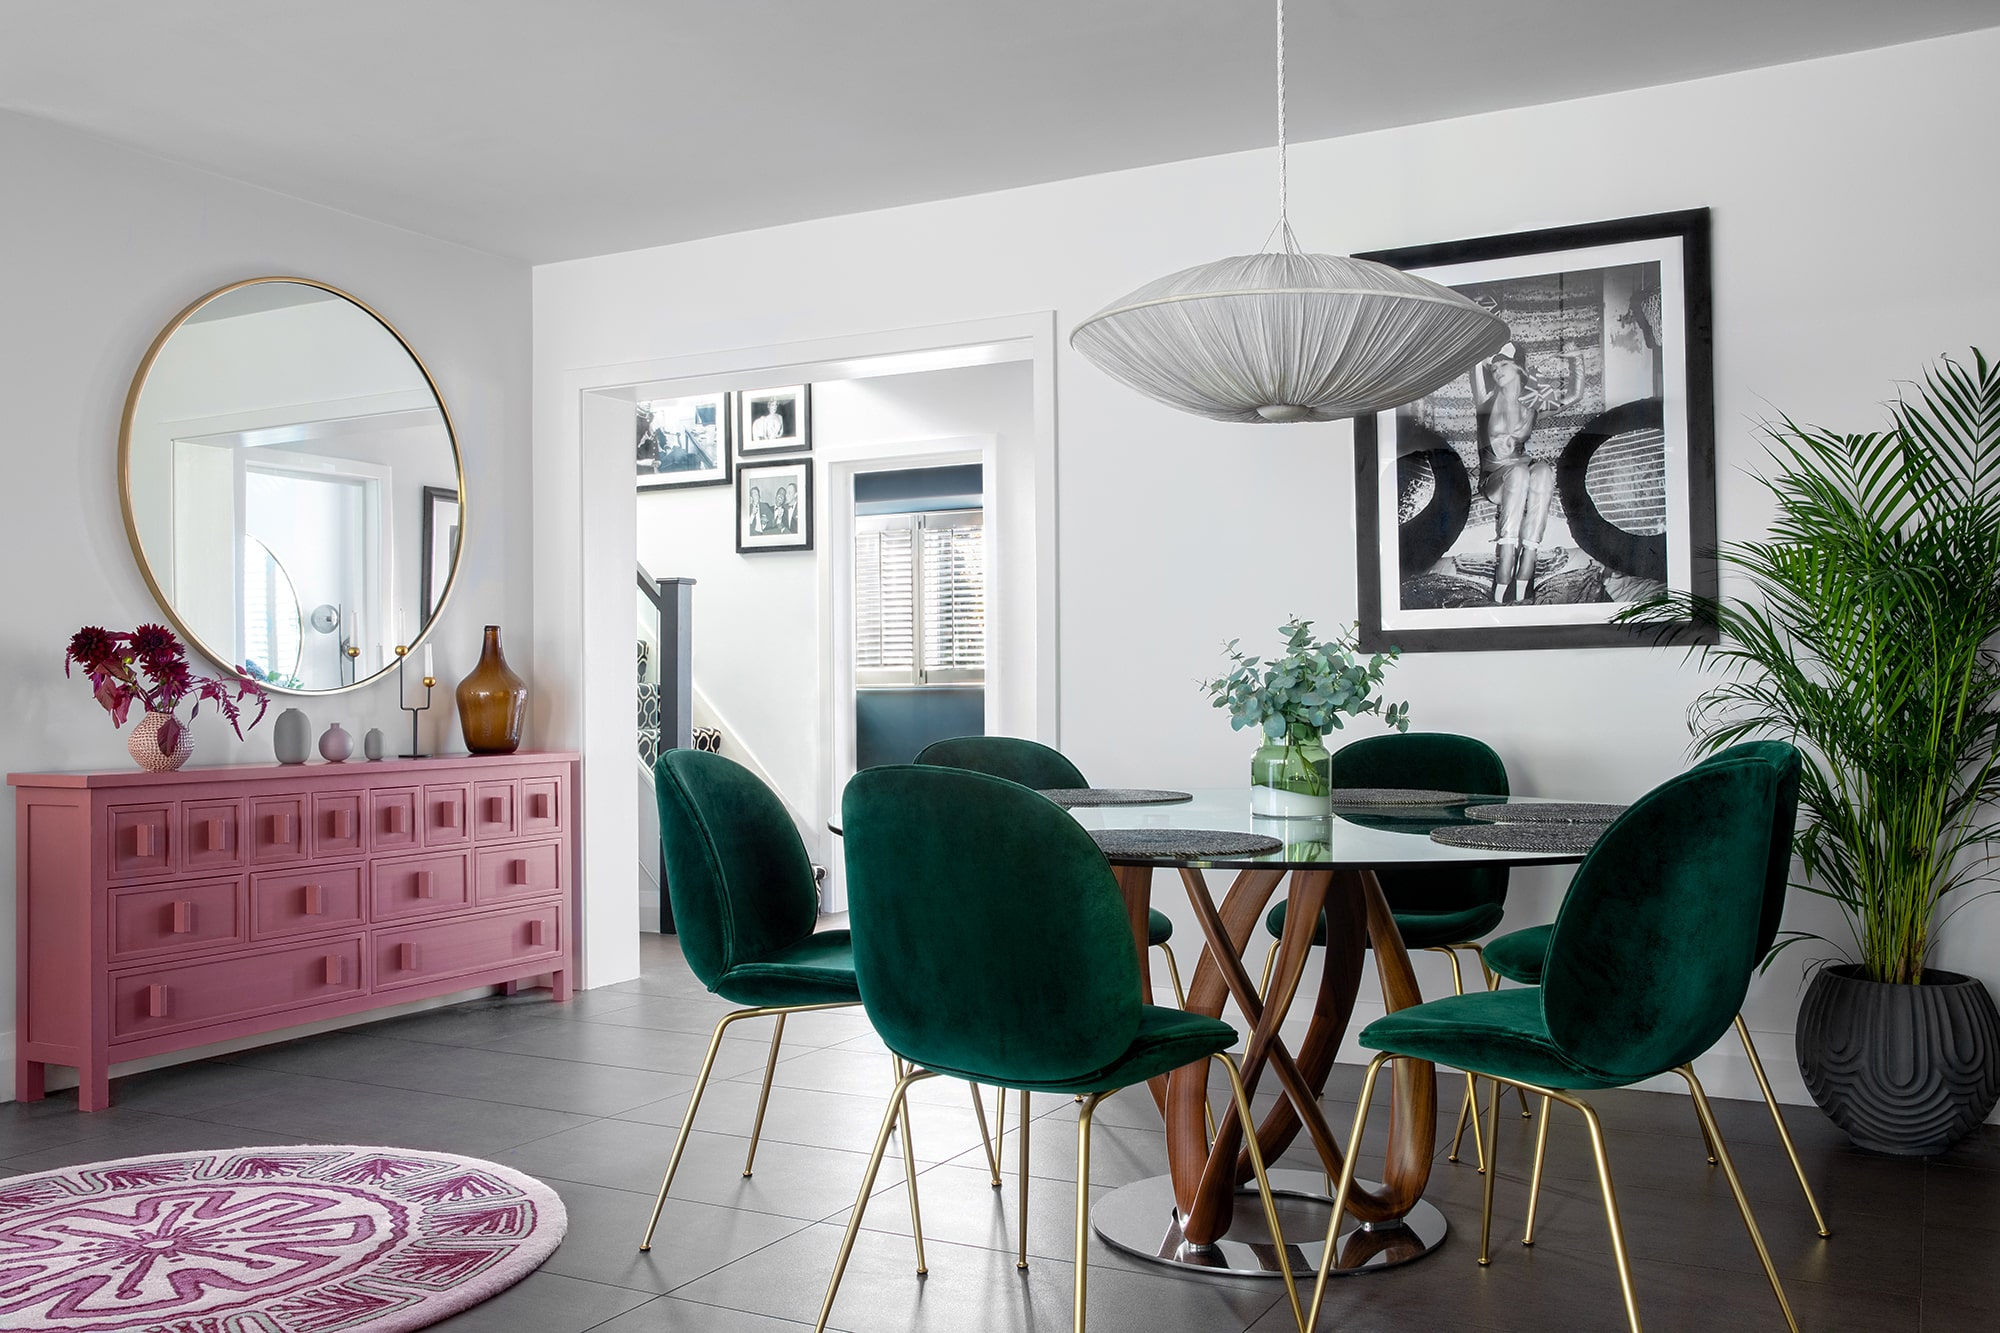 Interior design photo: living room with pink cabinet and round mirror; round table with a glass top, green velvet chairs; black and white photo of a woman on the wall